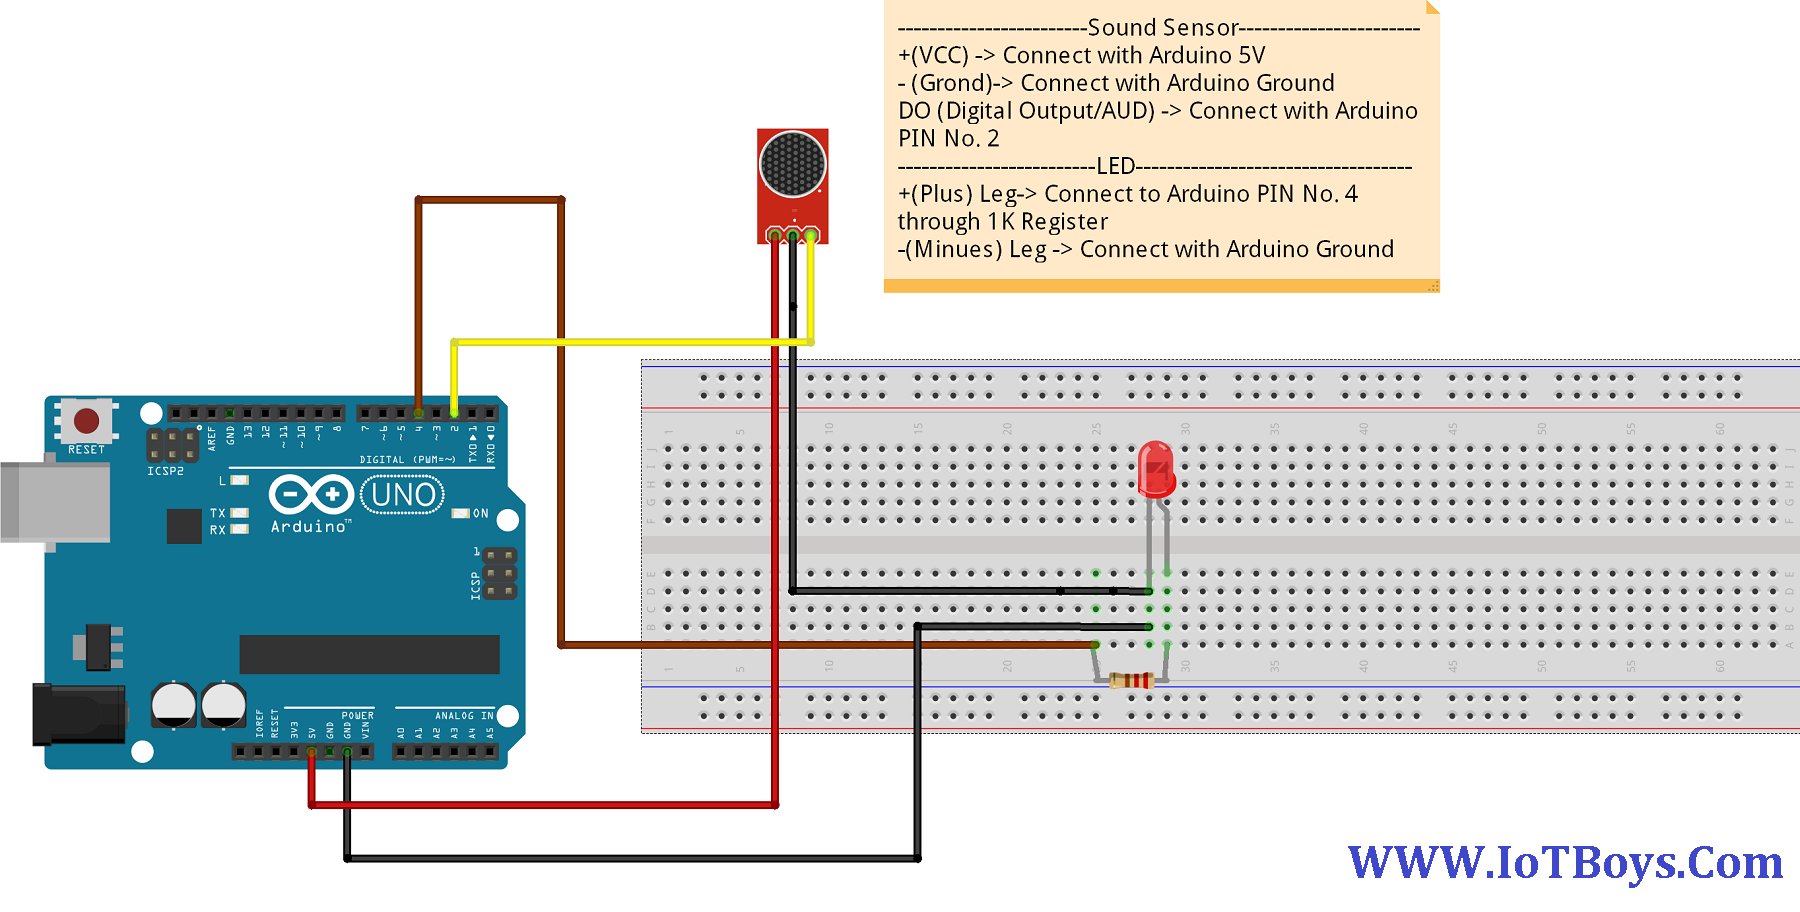 Control Led By Clap Using Arduino And Sound Sensor Arduino Project Hub